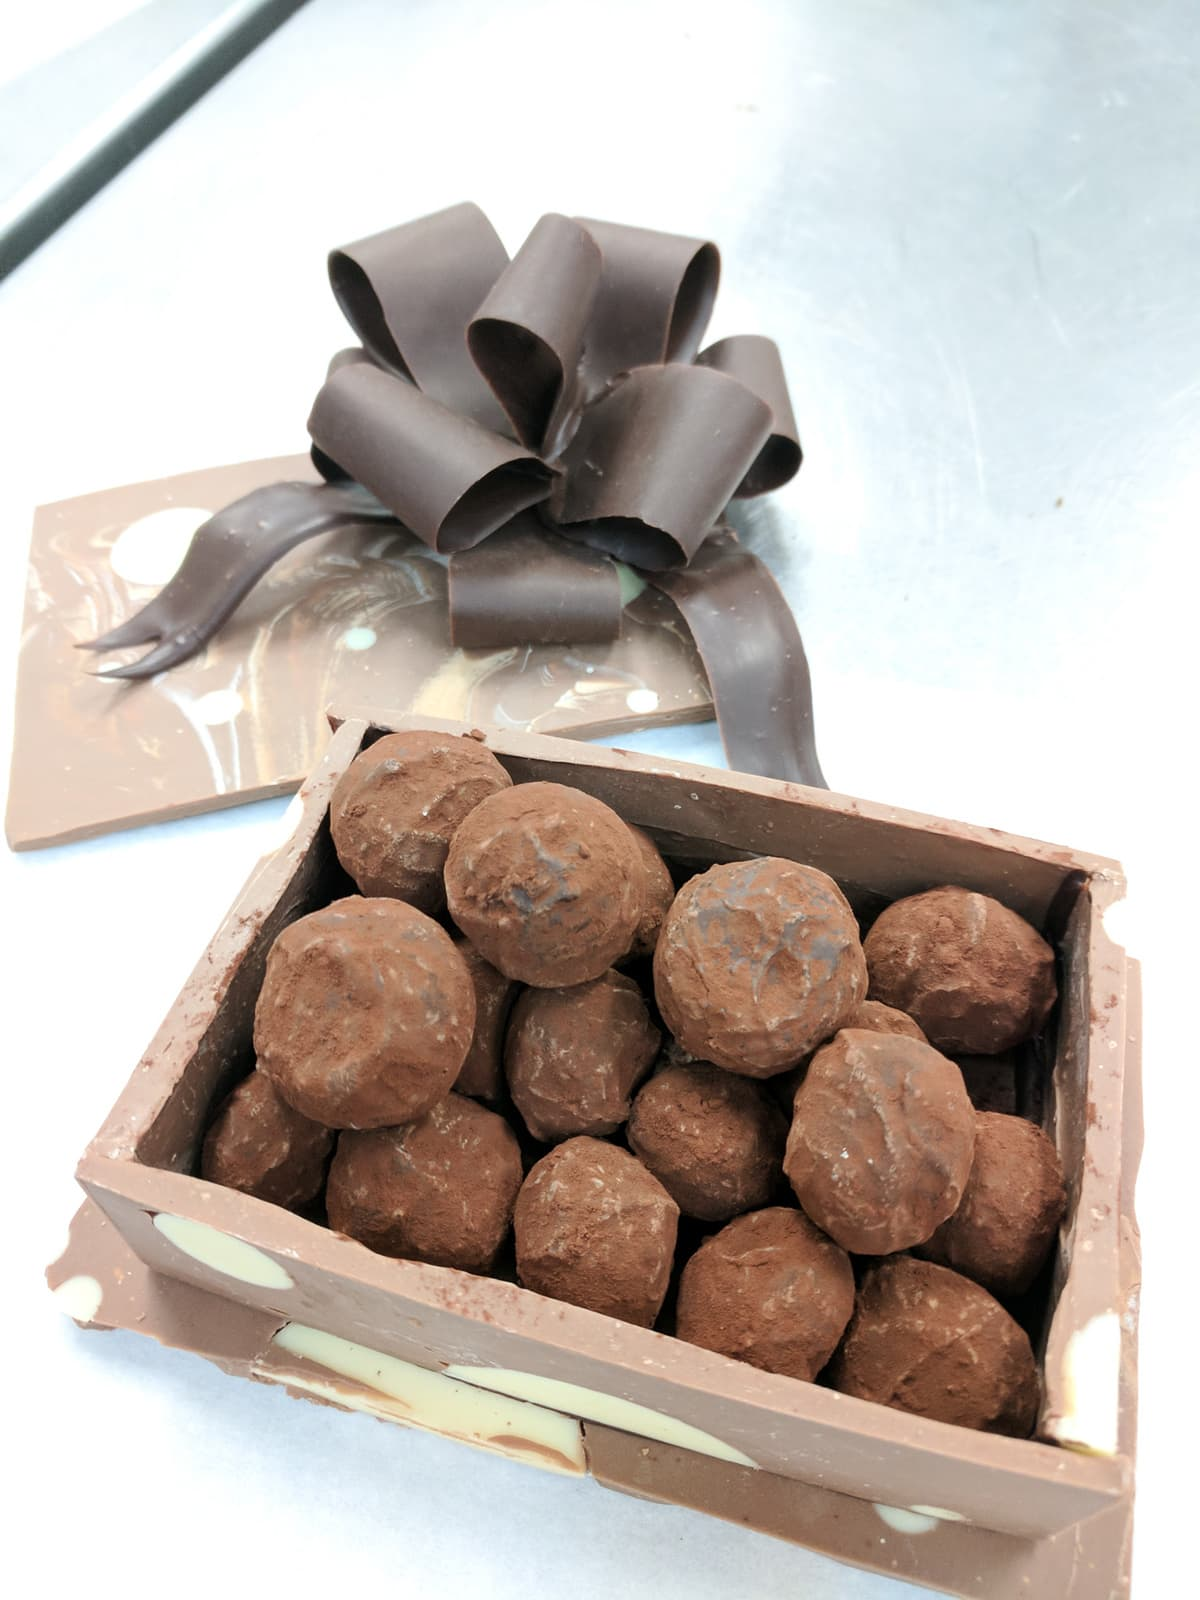 Chocolate box filled with chocolate truffles